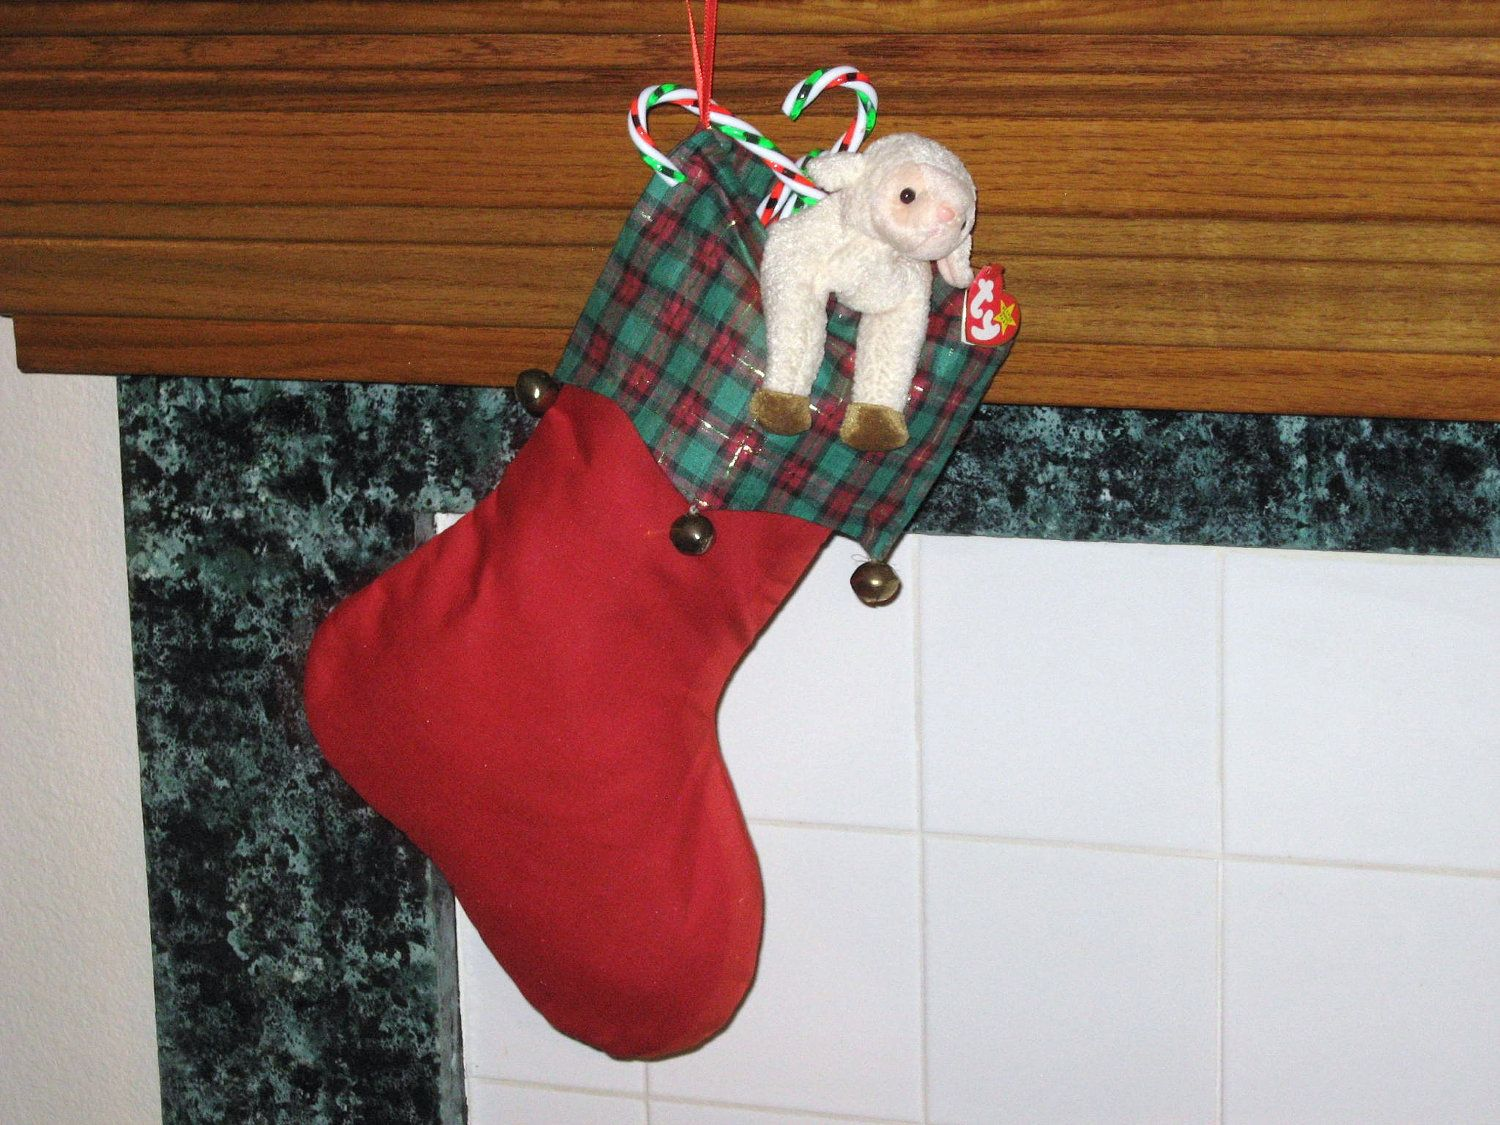 Old Fashioned Xmas Stockings - Old Style Handmade - Stockings With ...